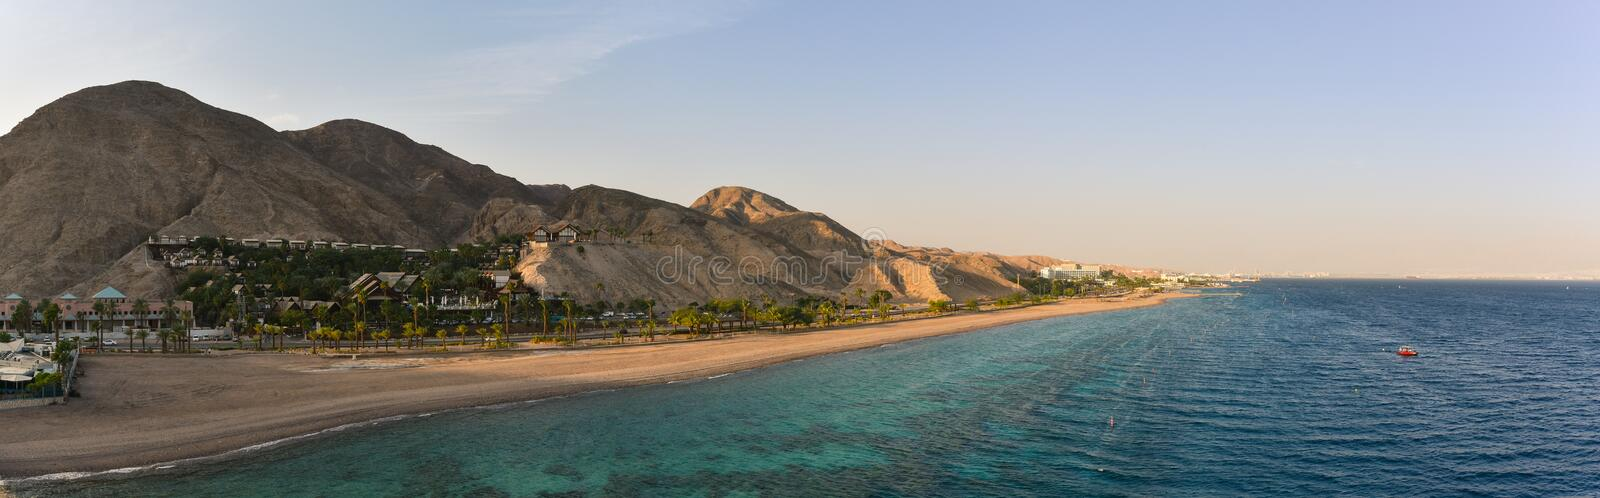 Panorama of the Red Sea coastline Eilat Israel. Panoramic view on the Red Sea coastline at famous touristic resort in Eilat, Israel royalty free stock image